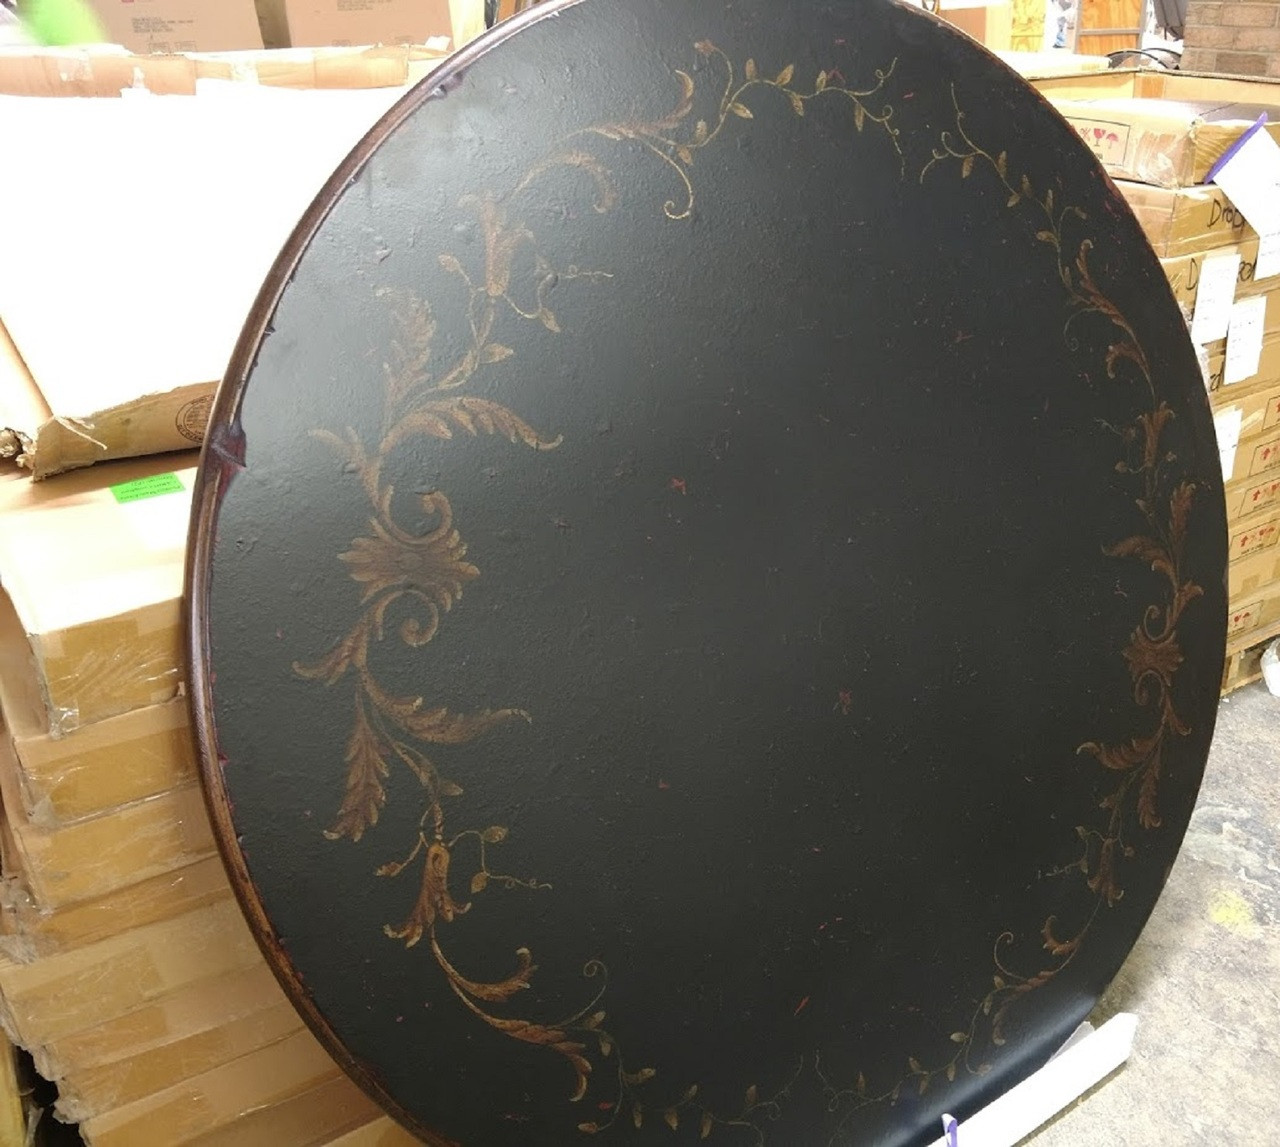 Vanguard Furniture Ebony Crackle With Painted Leaf Motif 40 Round Table Top Wooden Table Top Unfinished Furniture Round Table Top 48 Diameter Top North Carolina Furniture Closeout Furniture Wholesale Furniture Discontinued Furniture